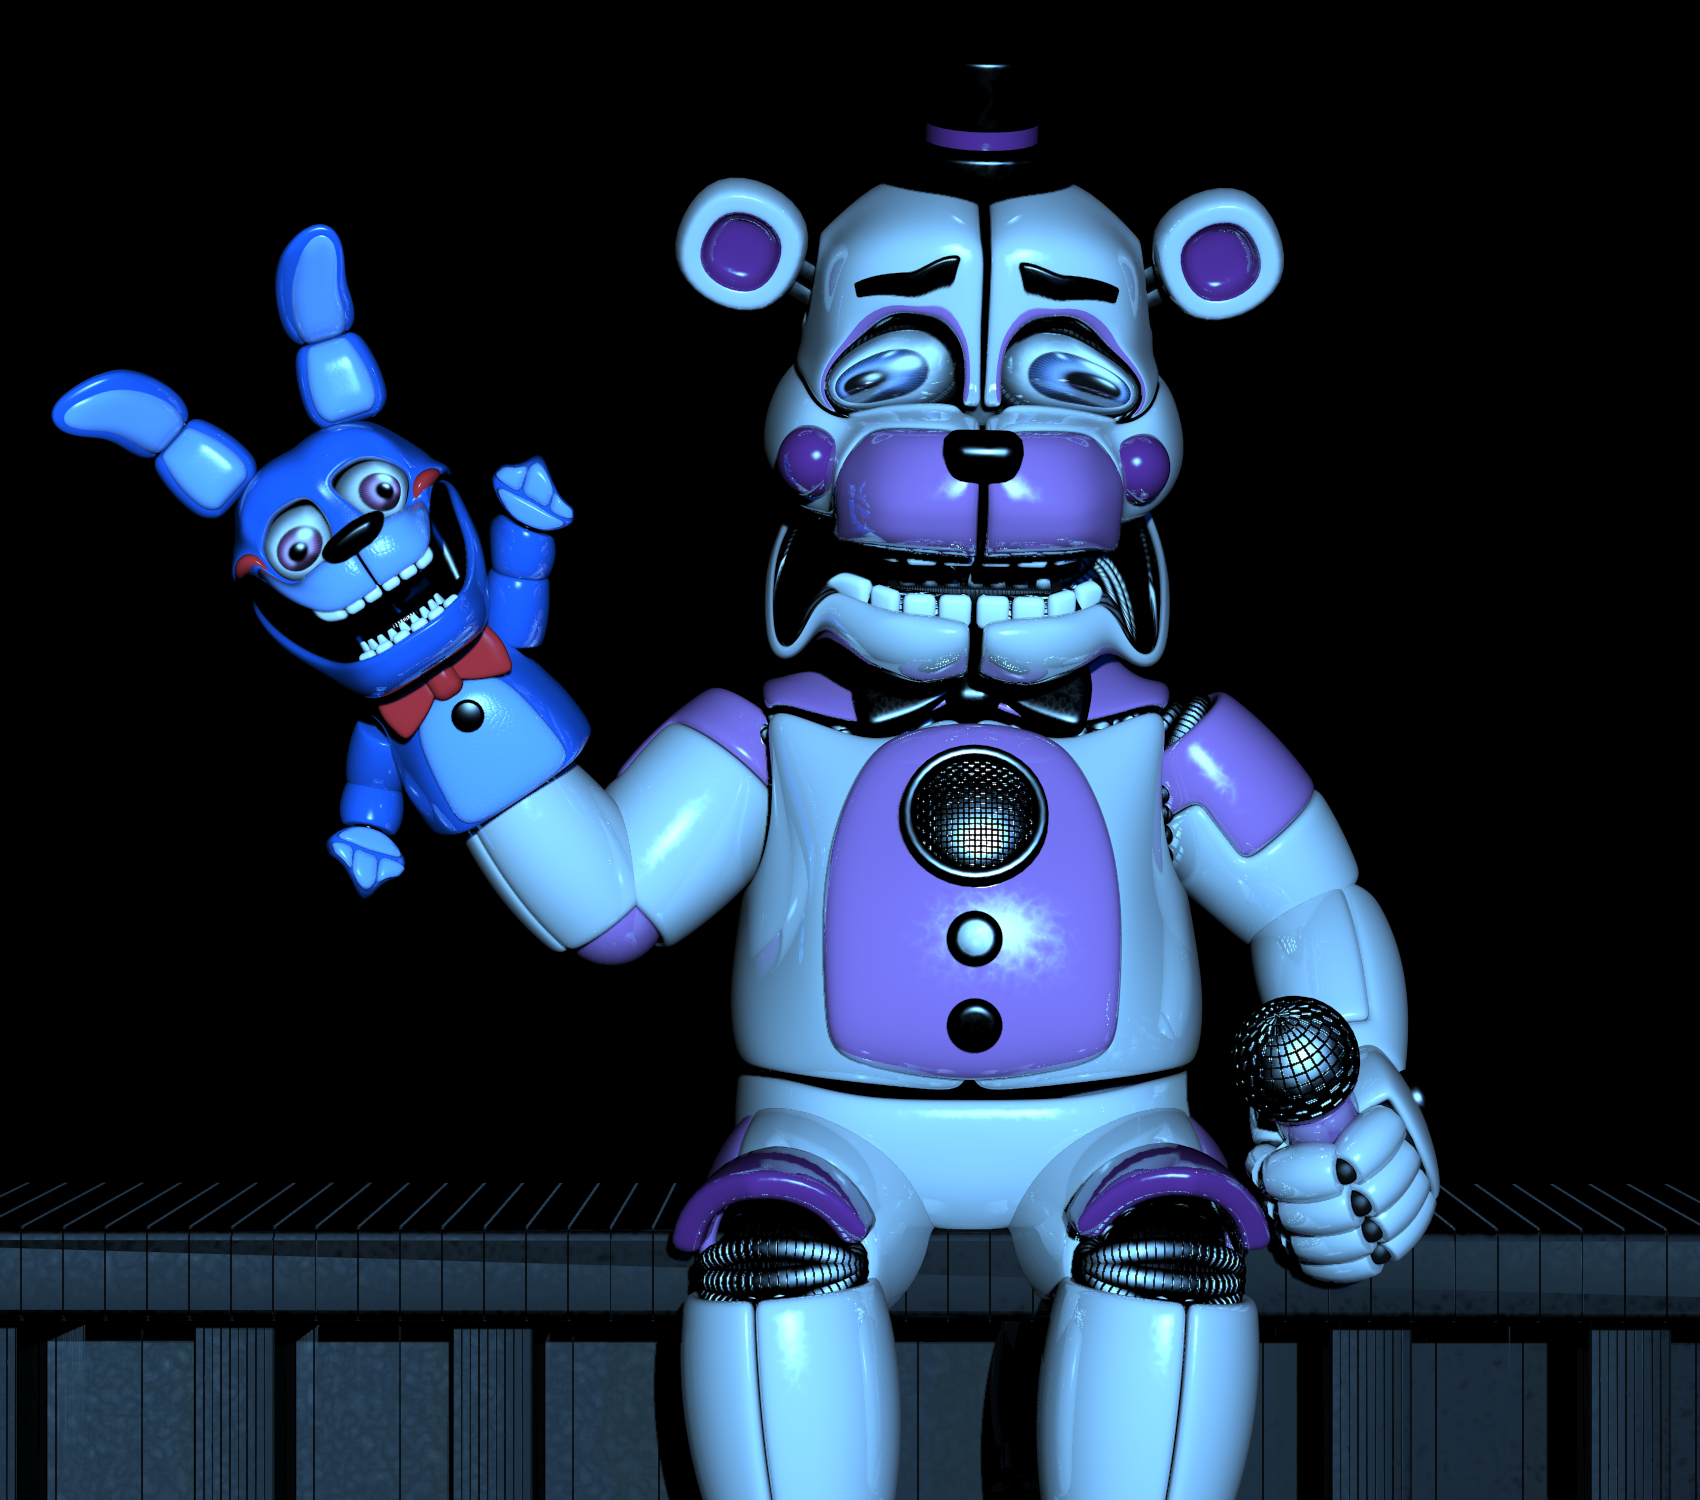 Funtime Freddy And BonBon Go On A Drug Trip By Pareogo On